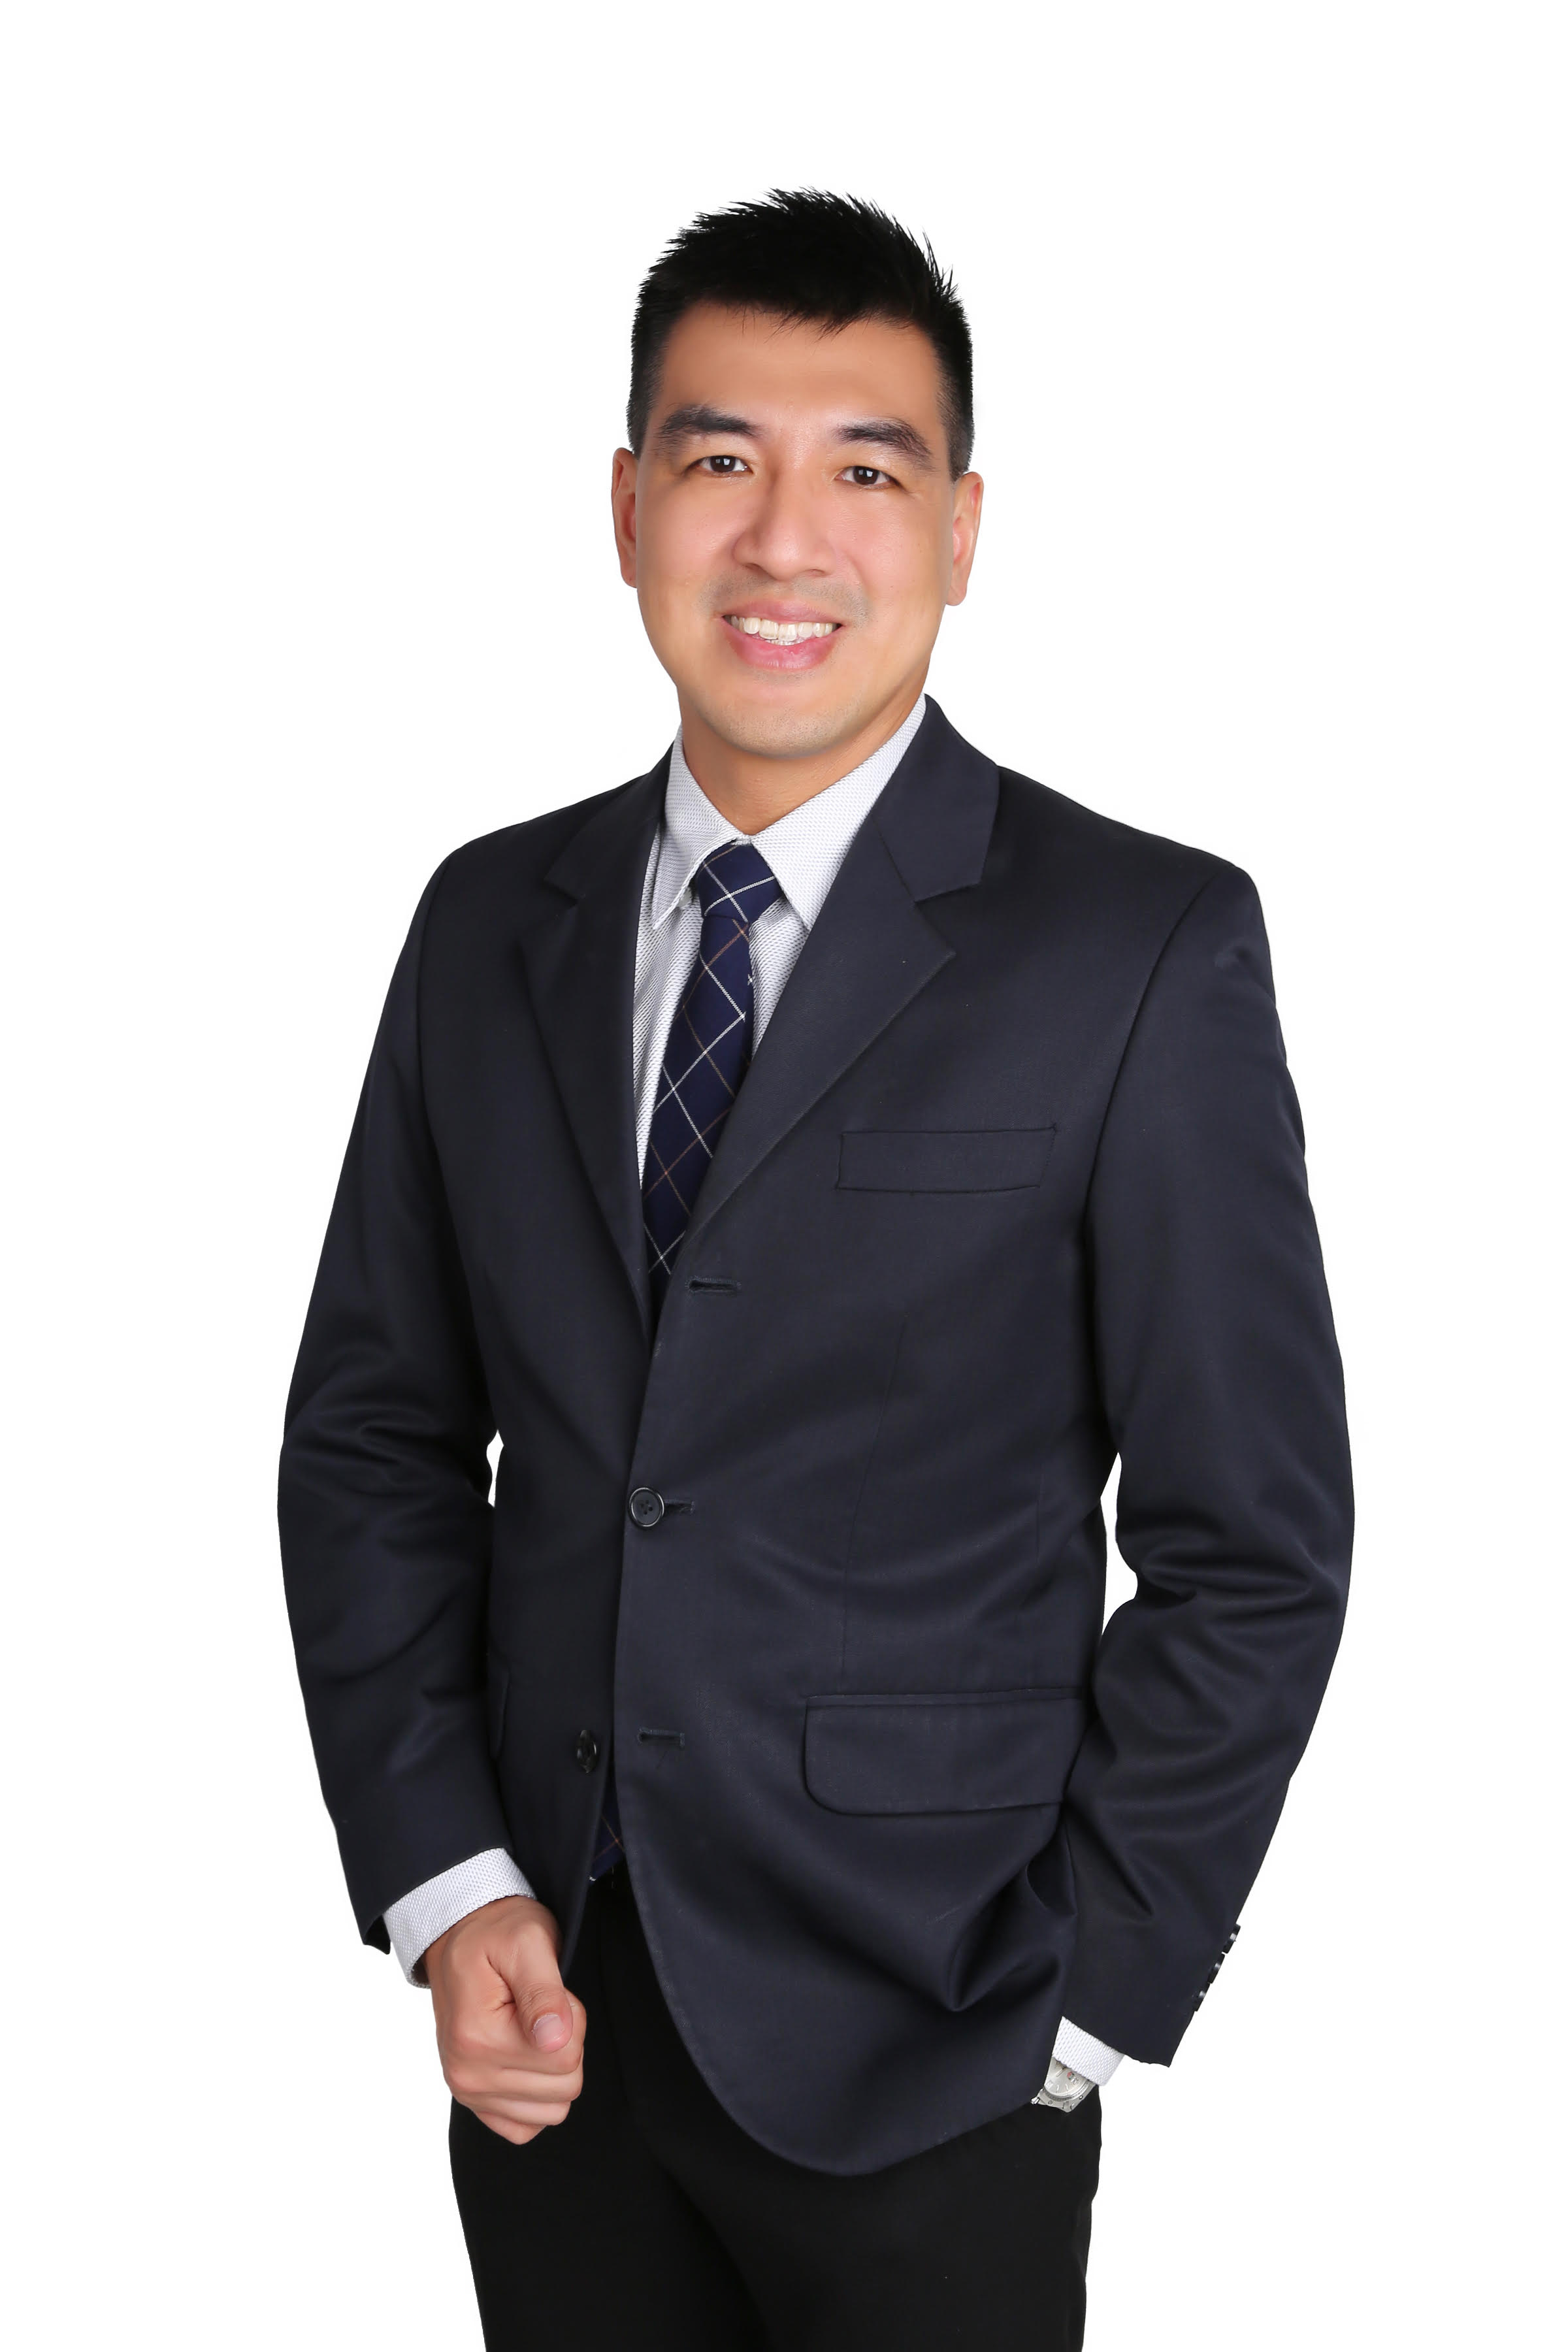 Edmond Looi  Board Member  Business Development at Enlighted Sales and Service Pte. Ltd (ESSPL)  Singapore